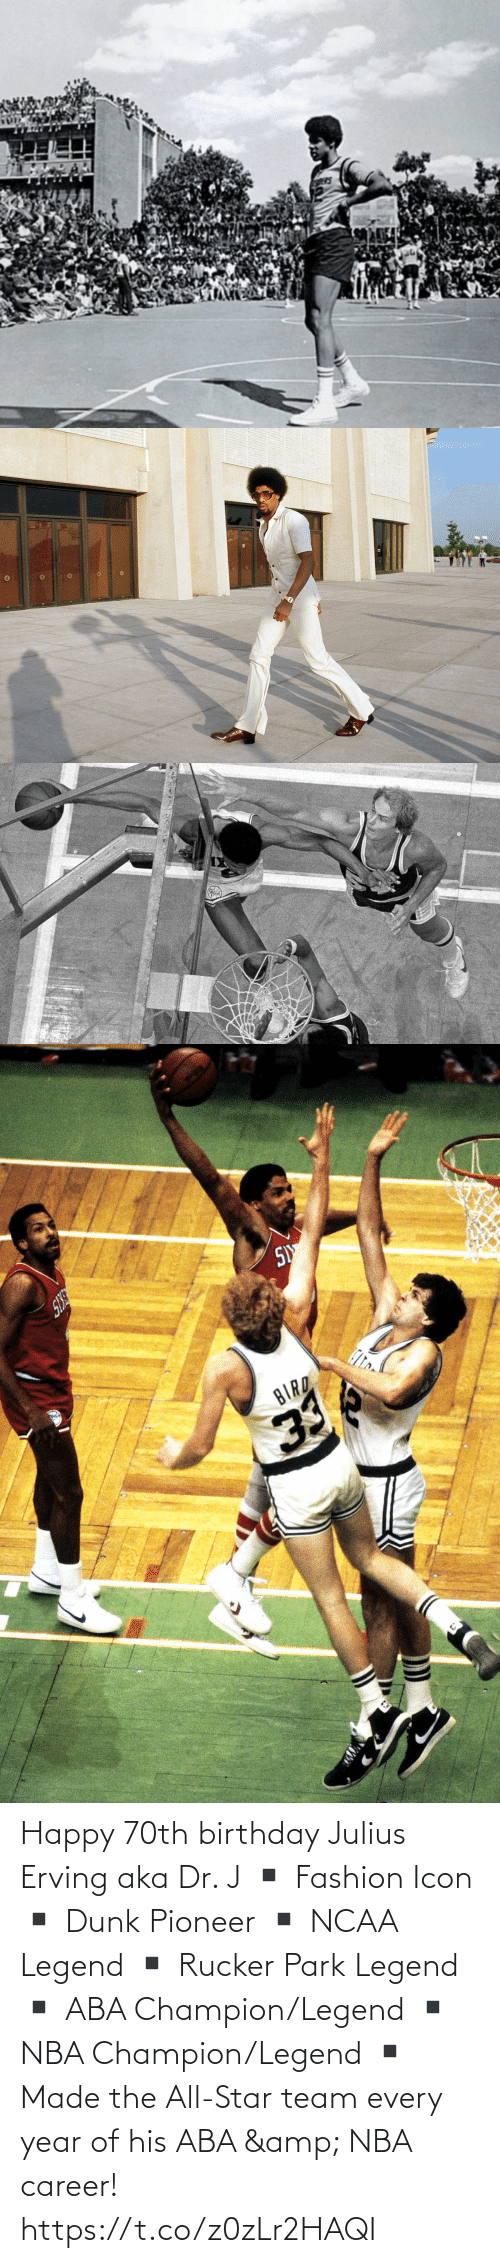 All Star, Birthday, and Dunk: Happy 70th birthday Julius Erving aka Dr. J  ▪️ Fashion Icon ▪️ Dunk Pioneer ▪️ NCAA Legend ▪️ Rucker Park Legend ▪️ ABA Champion/Legend ▪️ NBA Champion/Legend ▪️ Made the All-Star team every year of his ABA & NBA career! https://t.co/z0zLr2HAQI